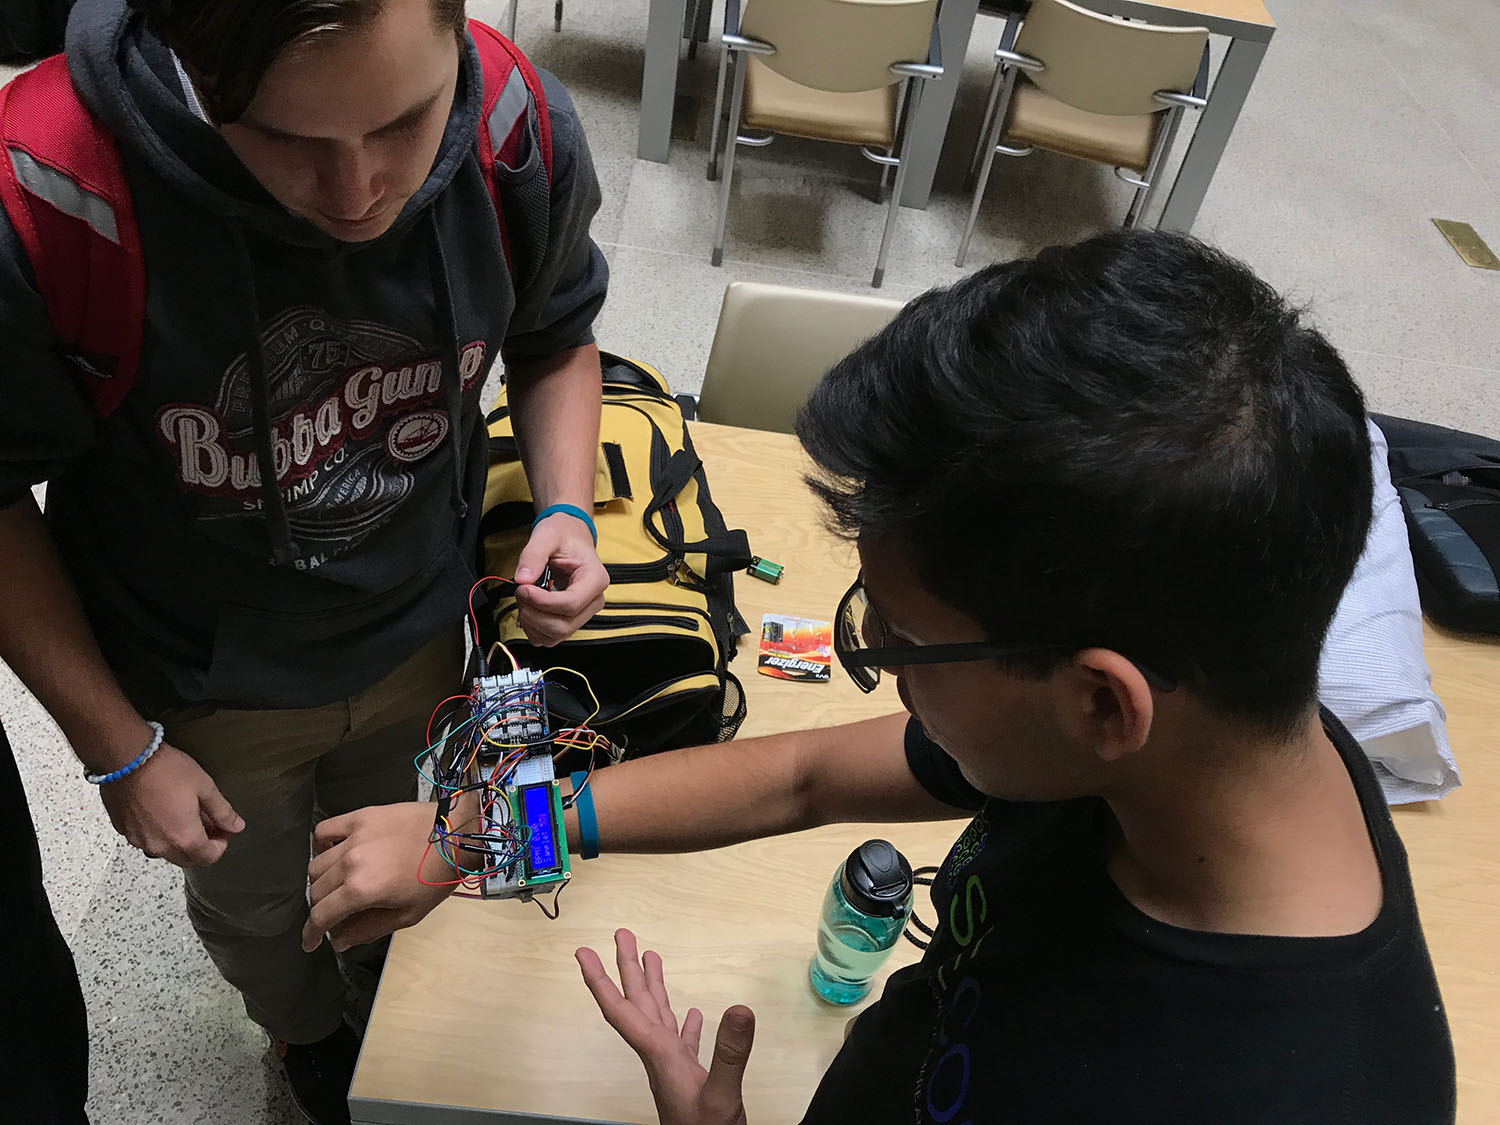 Group working on a watch-type device to measure vital signs